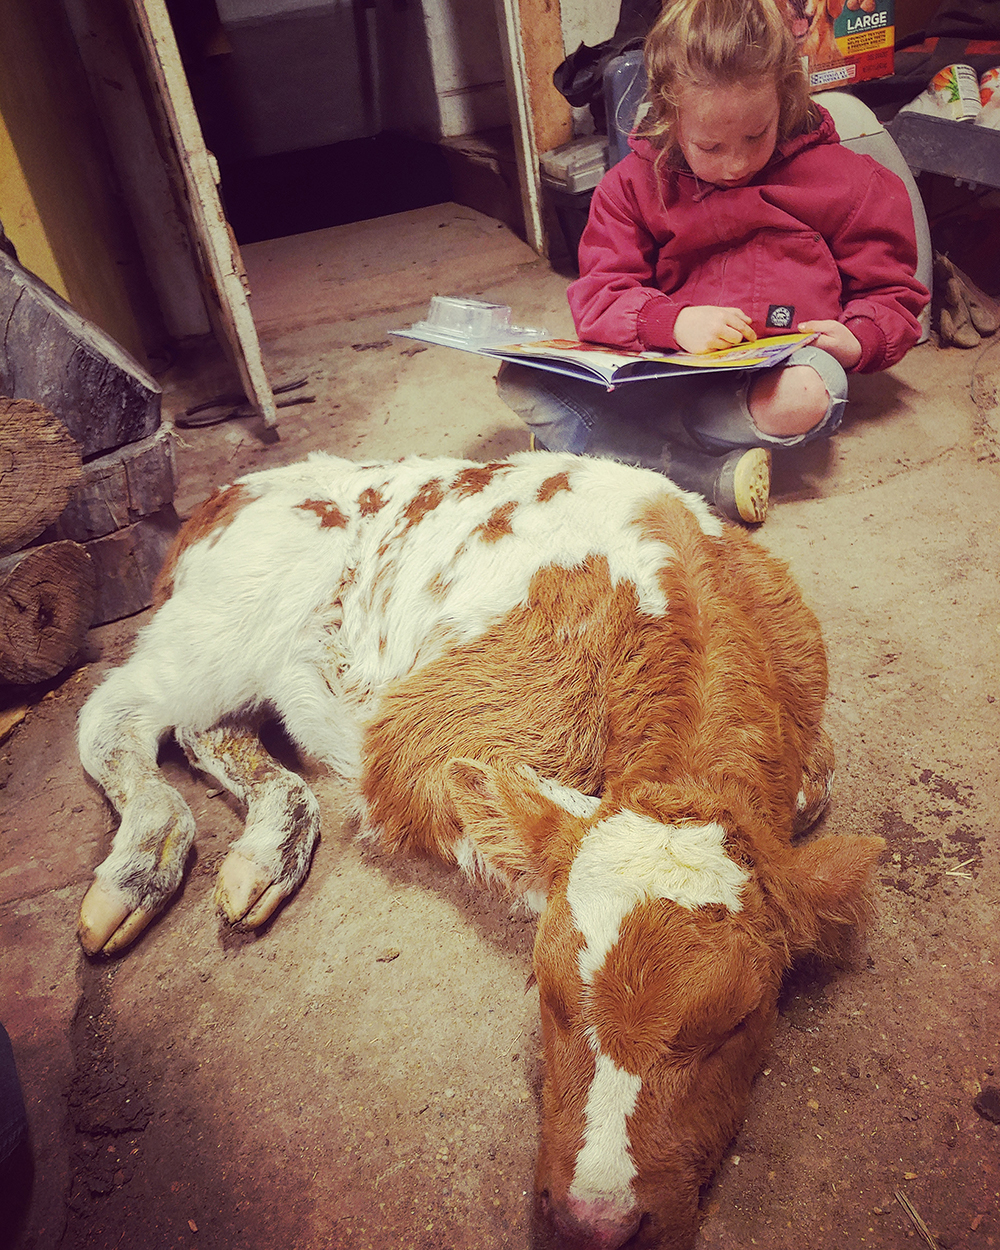 "Tif Kais showed her daughter Kimber reading to a cold calf by the wood stove. Nothing hasnt changed much for us with this COVID19, she said. ""Just another day on the ranch."""